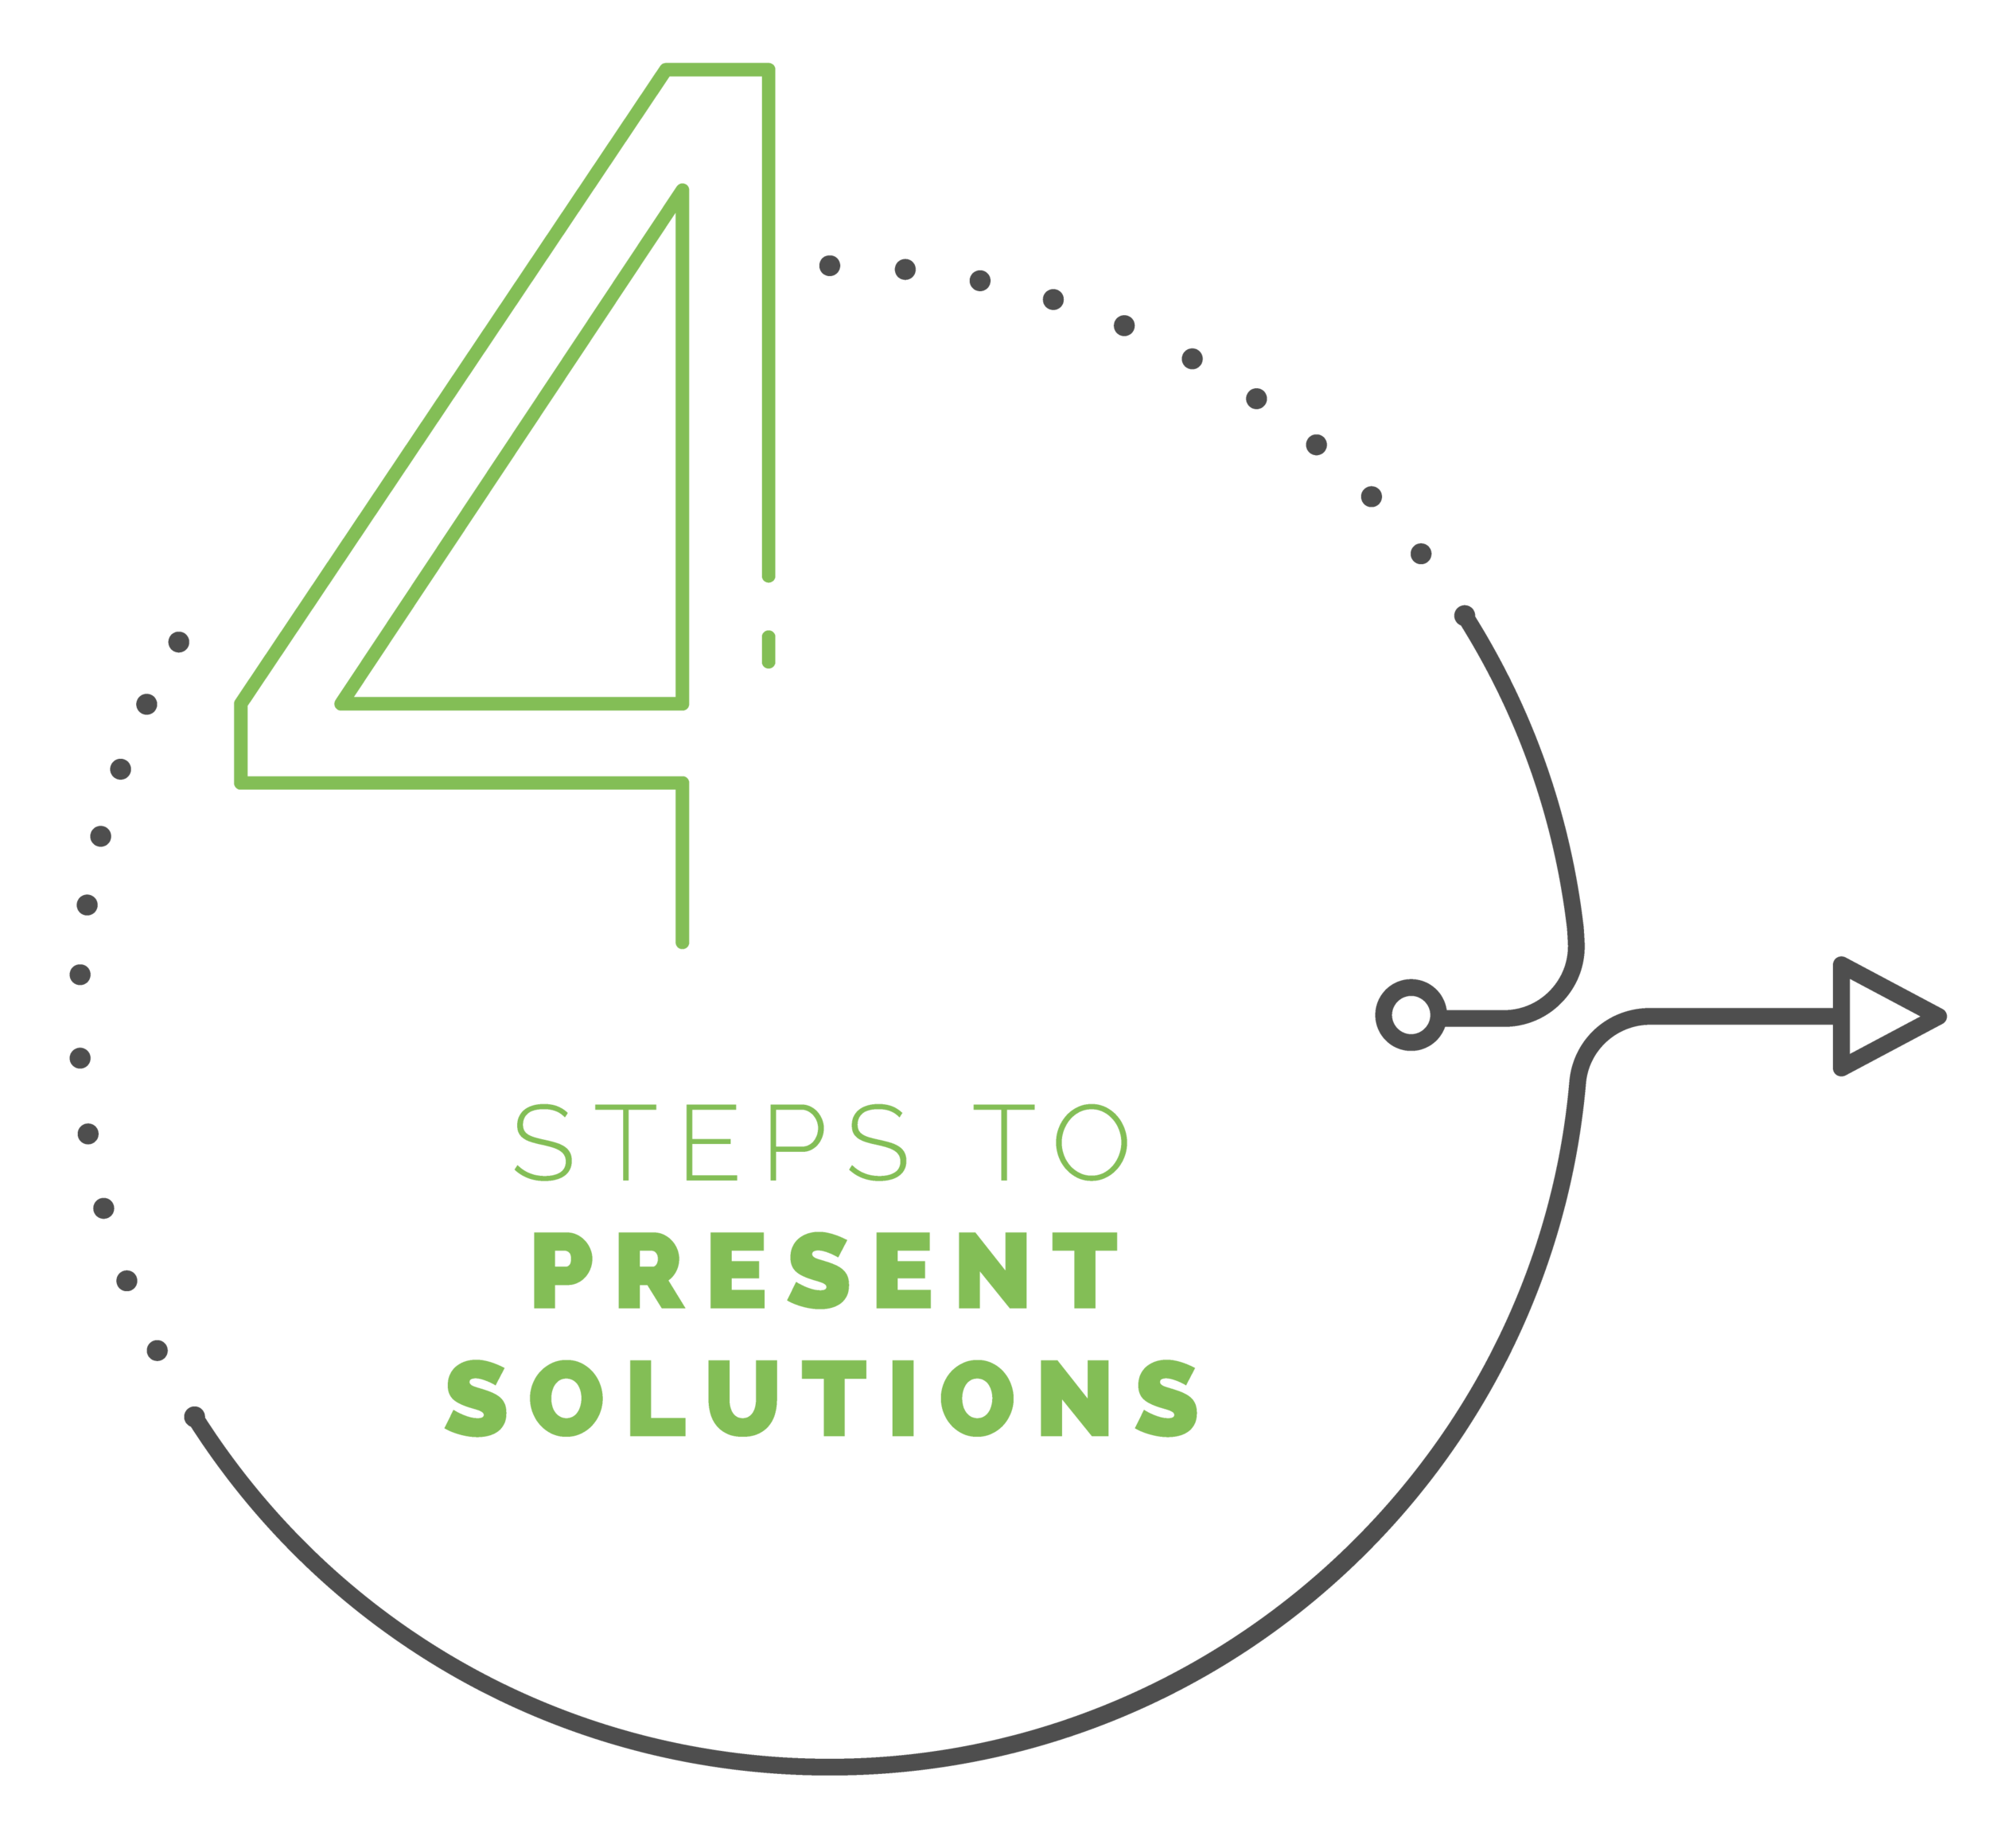 4 steps to present solutions.